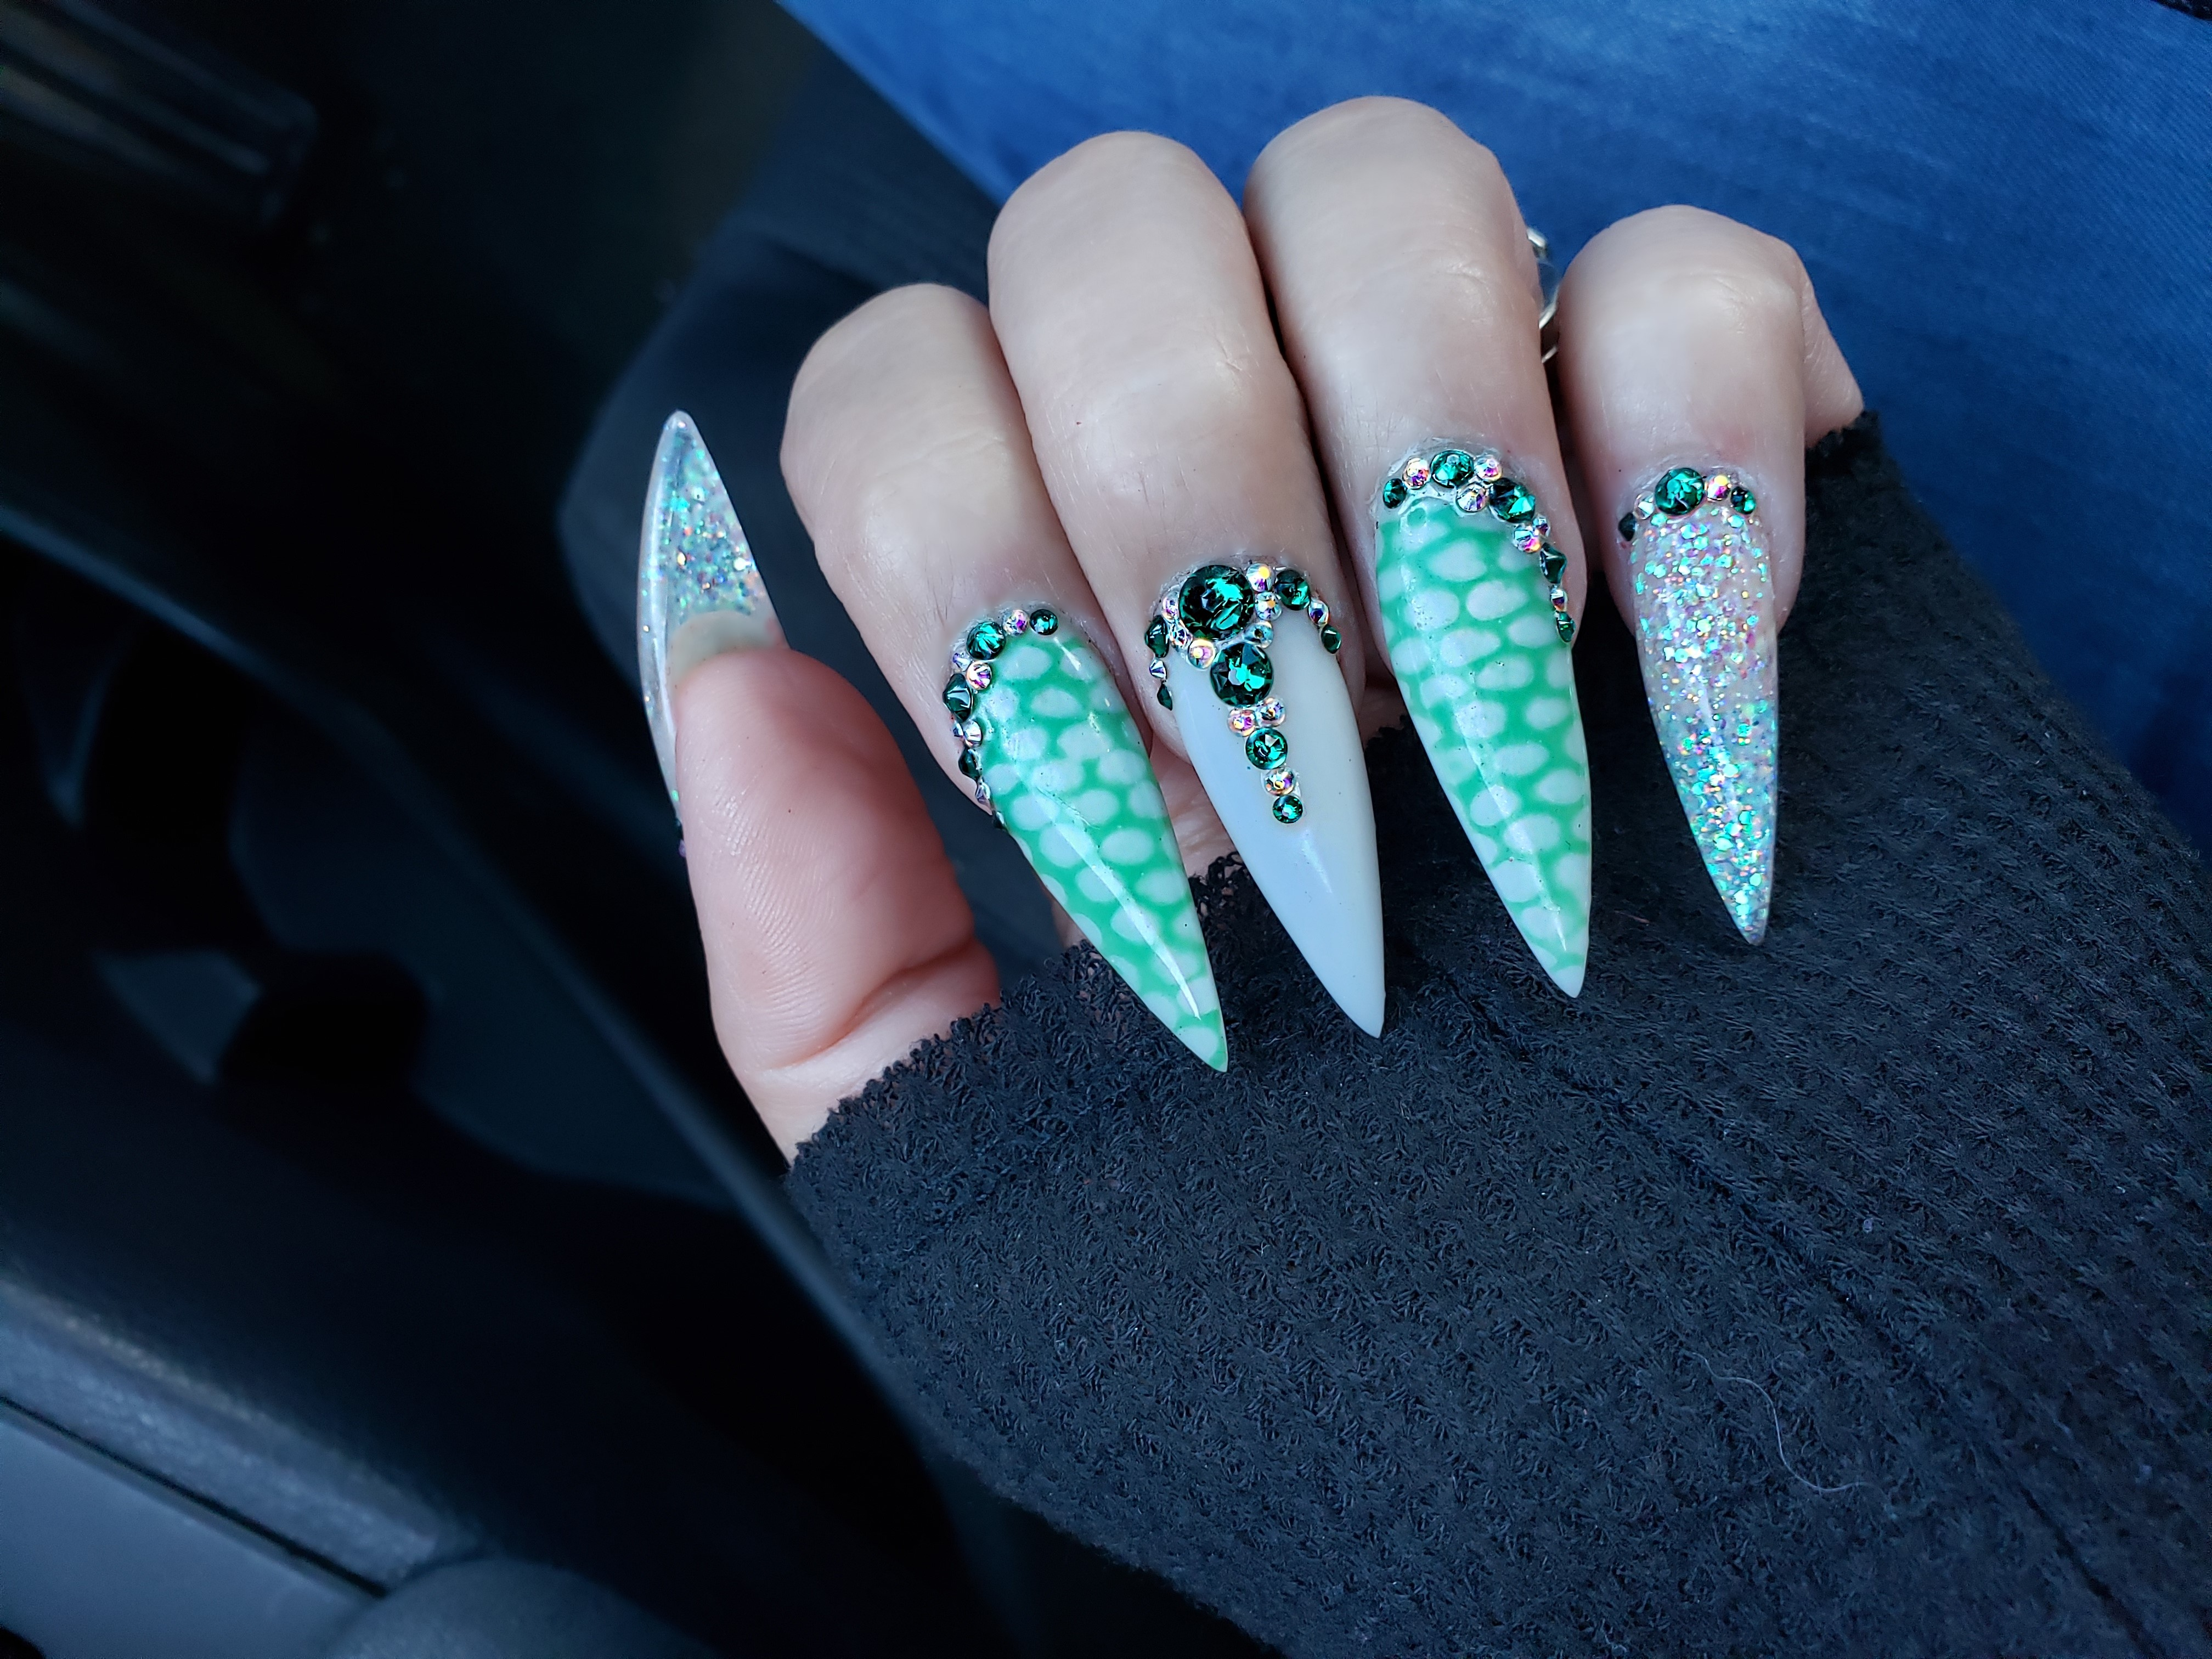 Day 120: Butterfly and Stiletto Nail Art